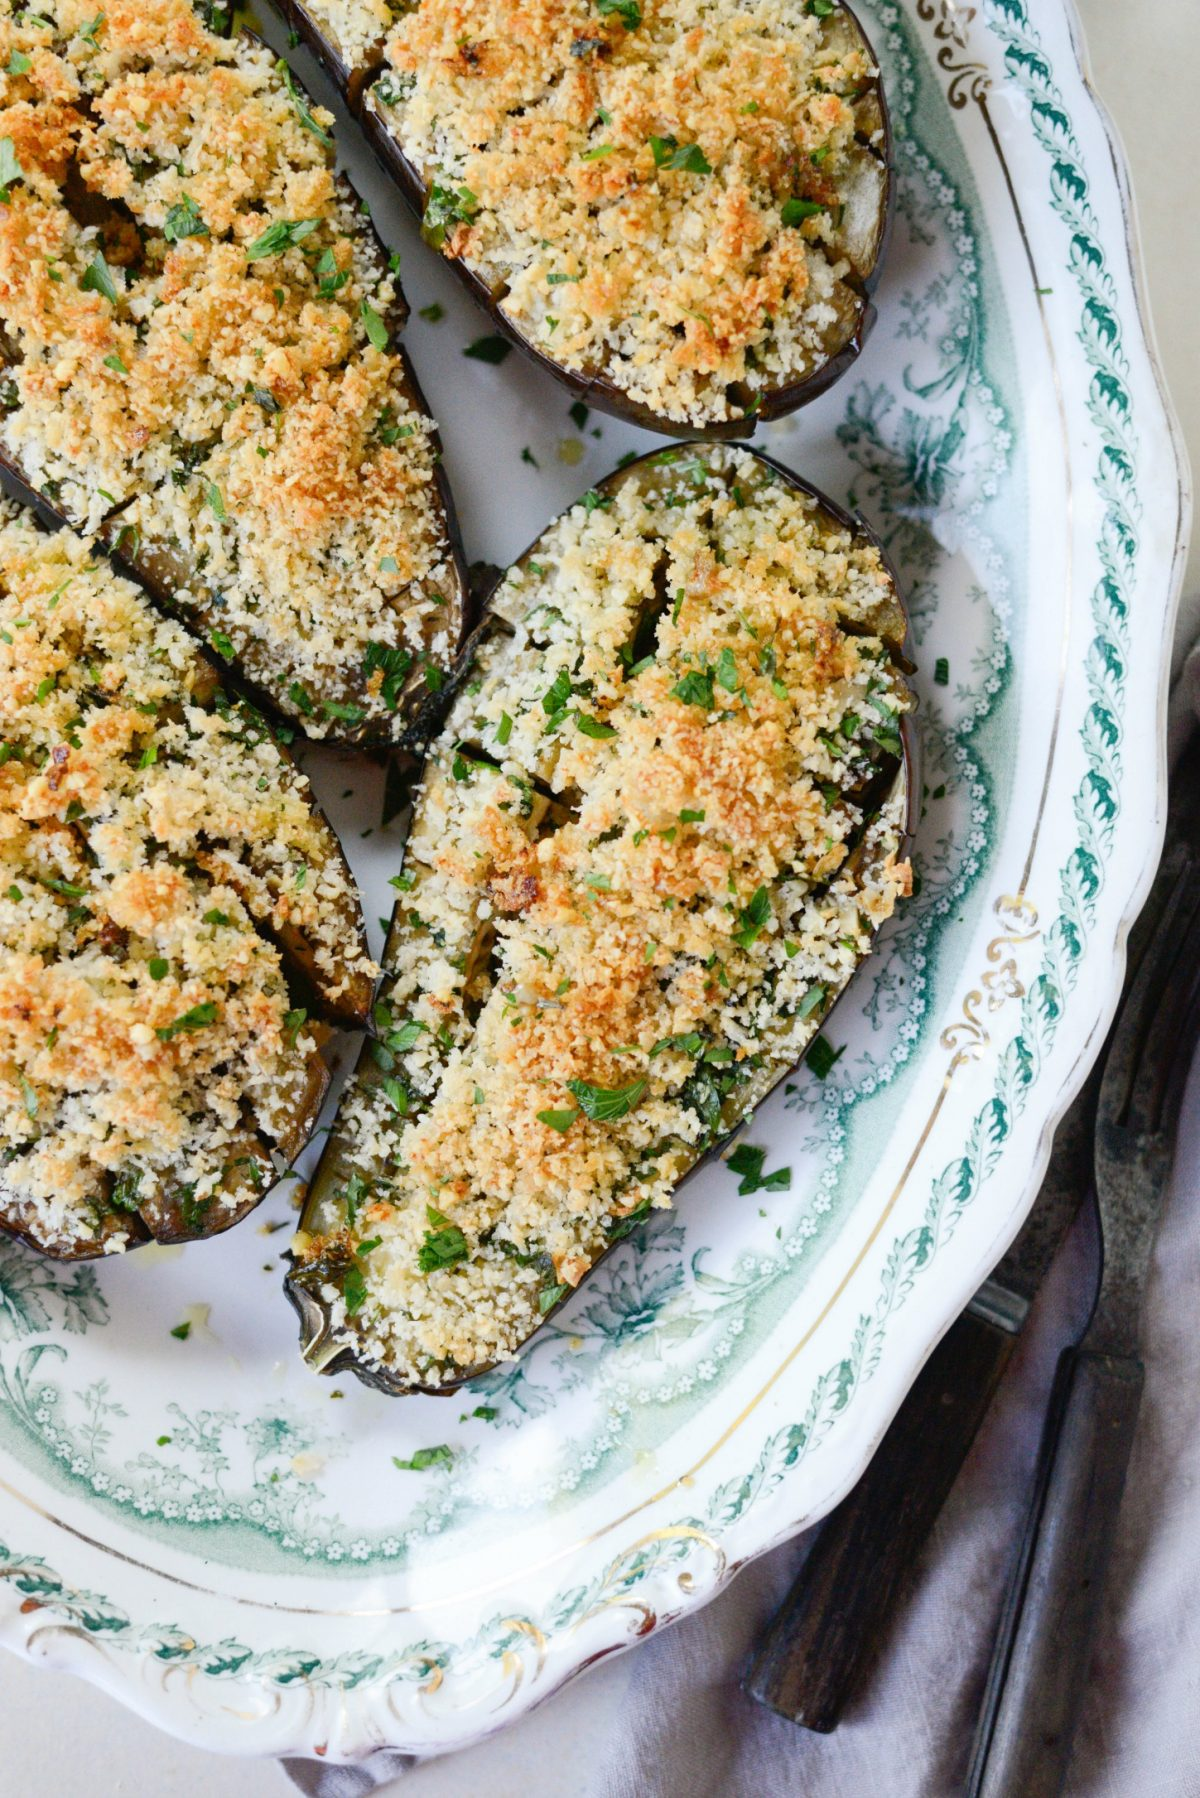 Baked Eggplant with Pecorino Crumbs l SimplyScratch.com (9)